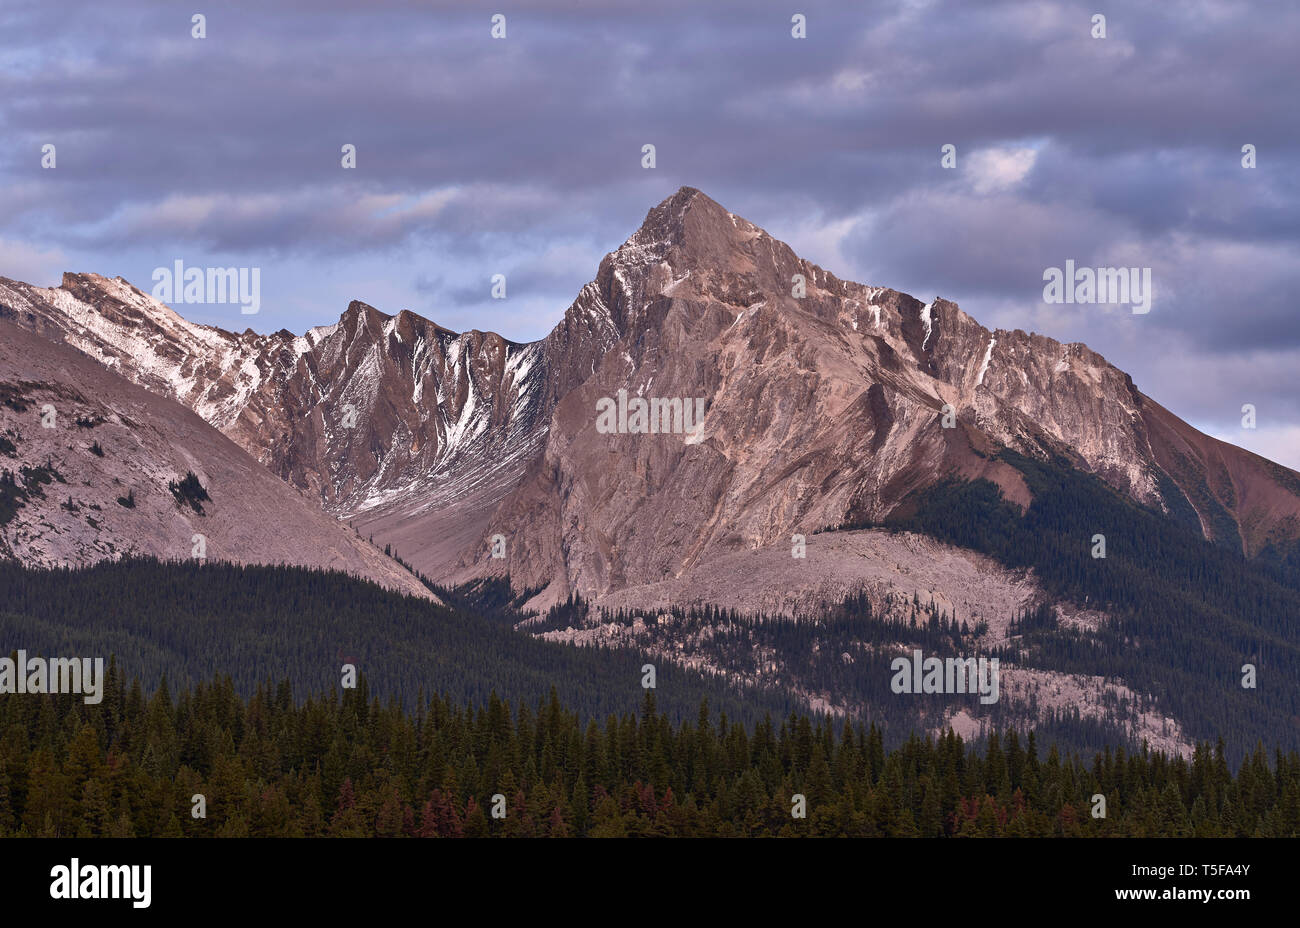 Scenic view of mountains in Maligne lake by snowcapped mountain agains - Stock Image